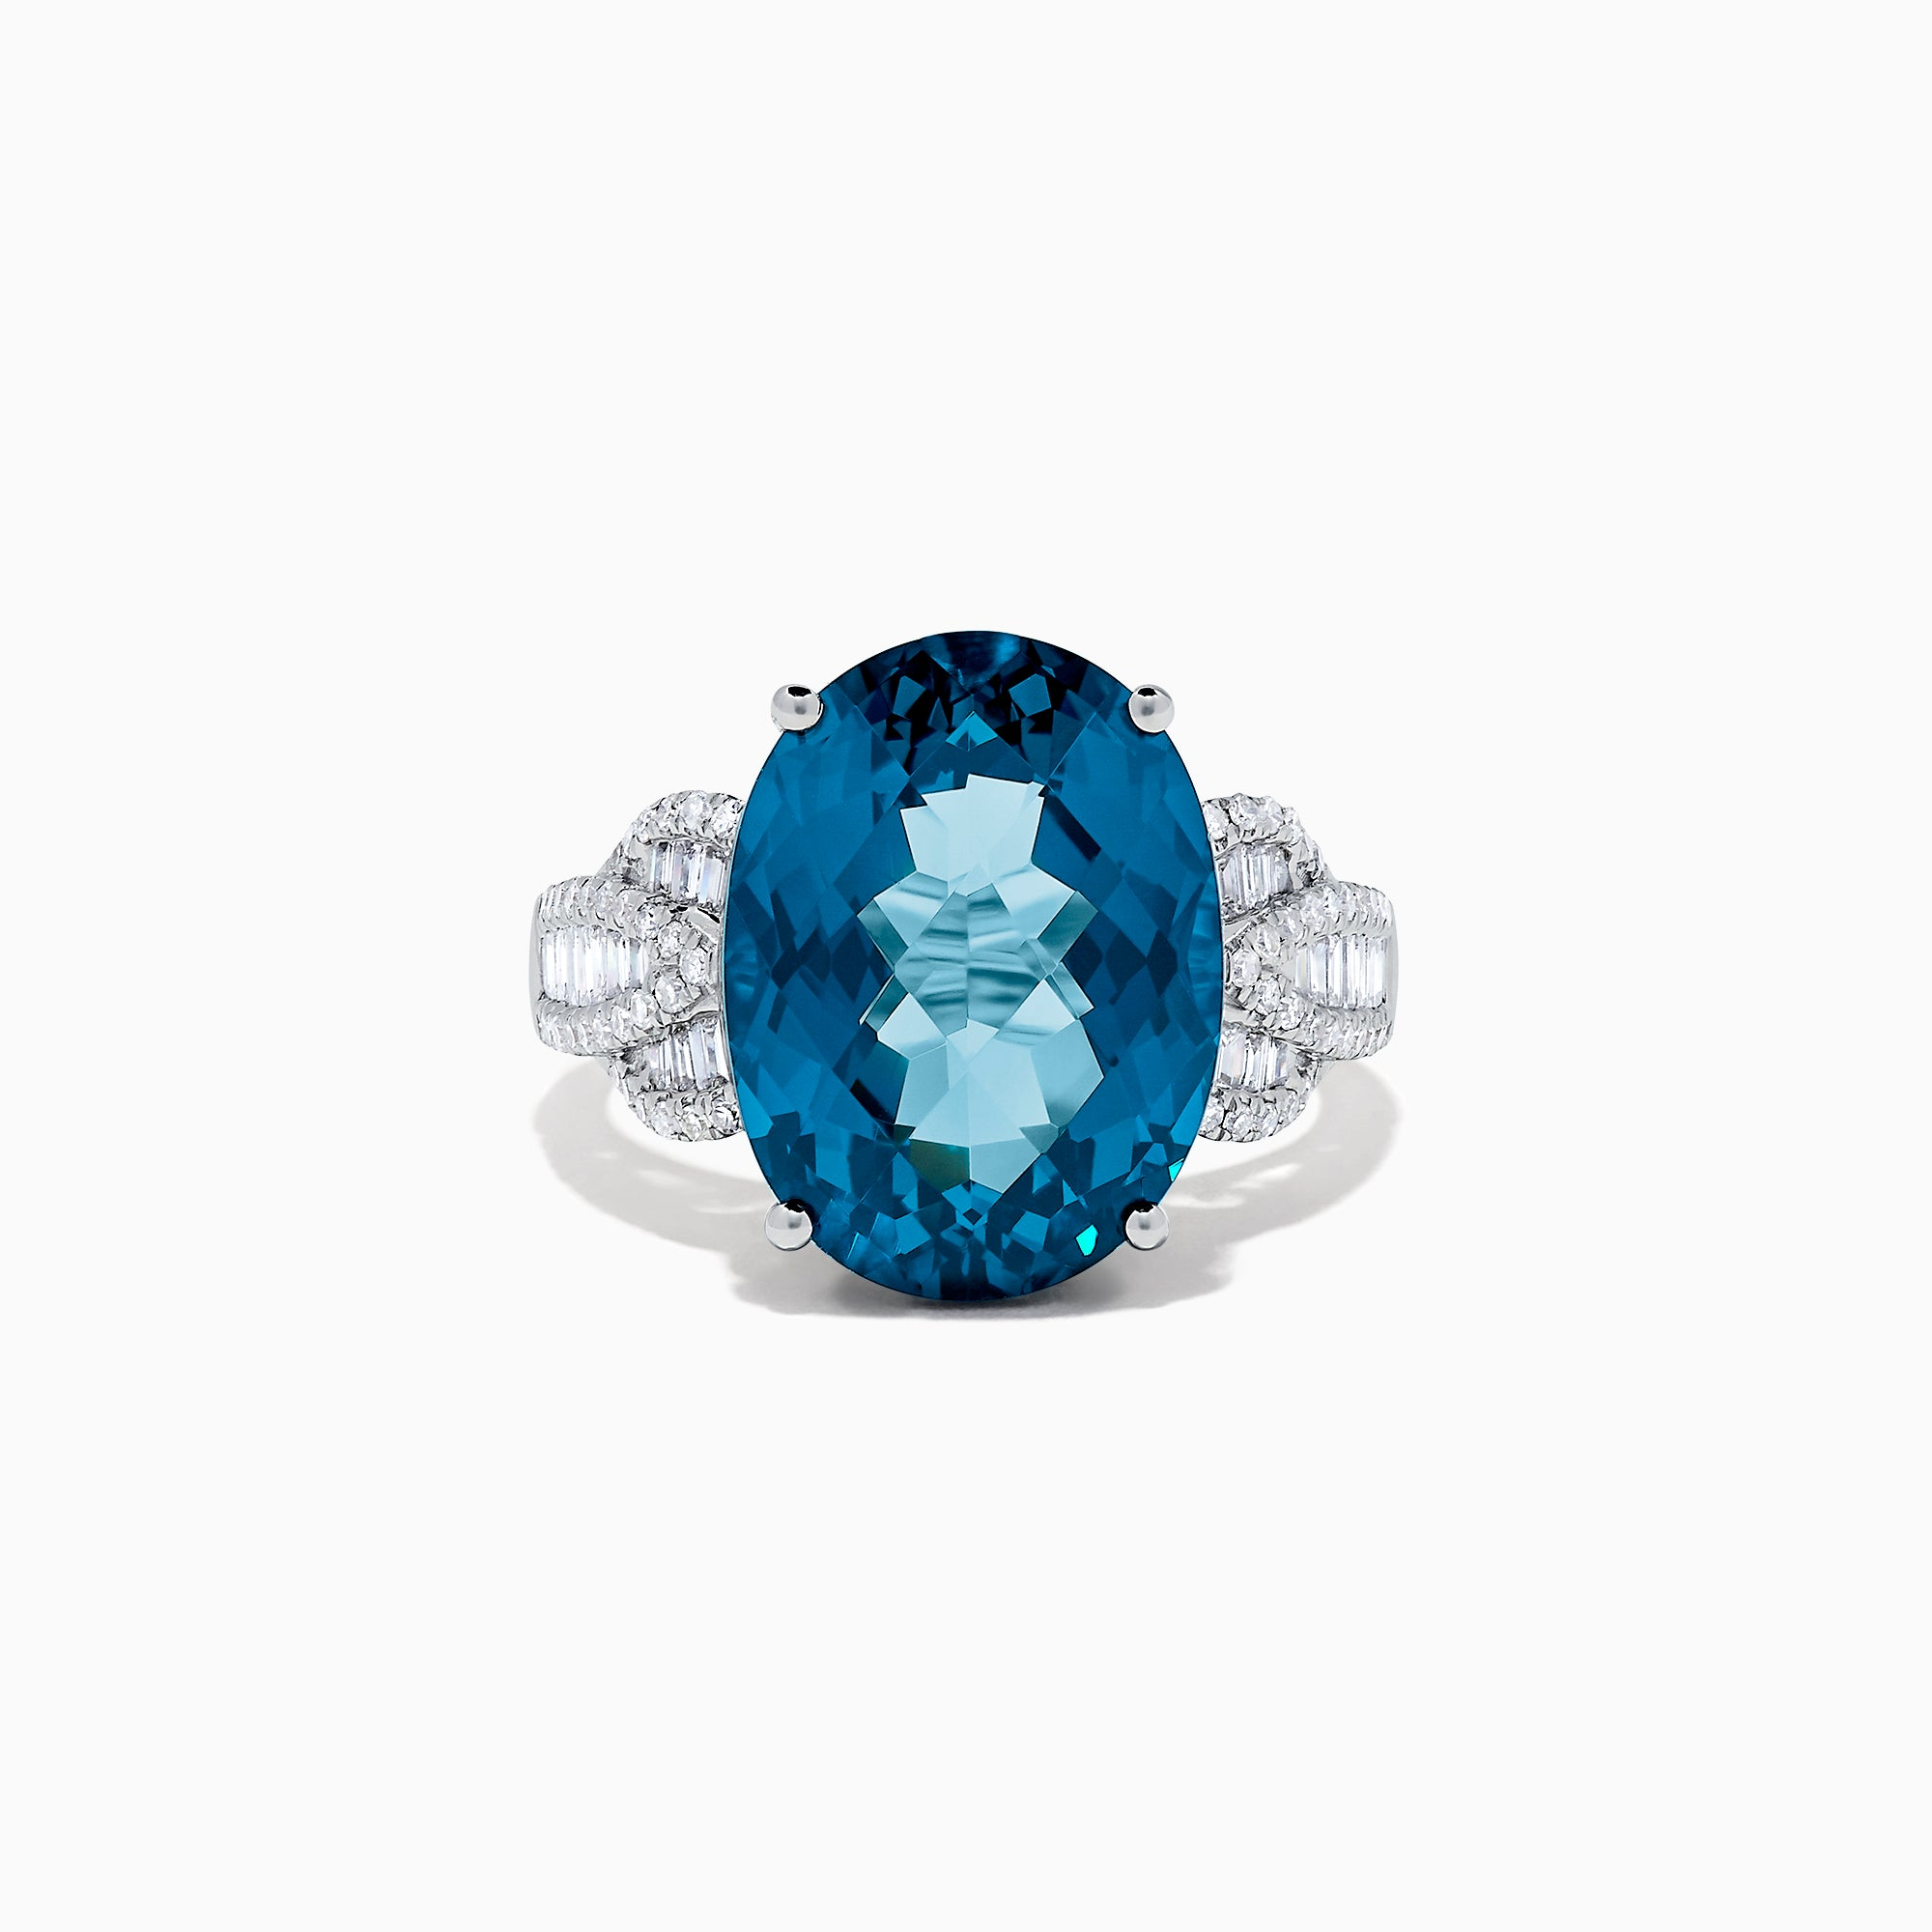 Effy Ocean Bleu 14K Gold London Blue Topaz and Diamond Ring, 11.35 TCW